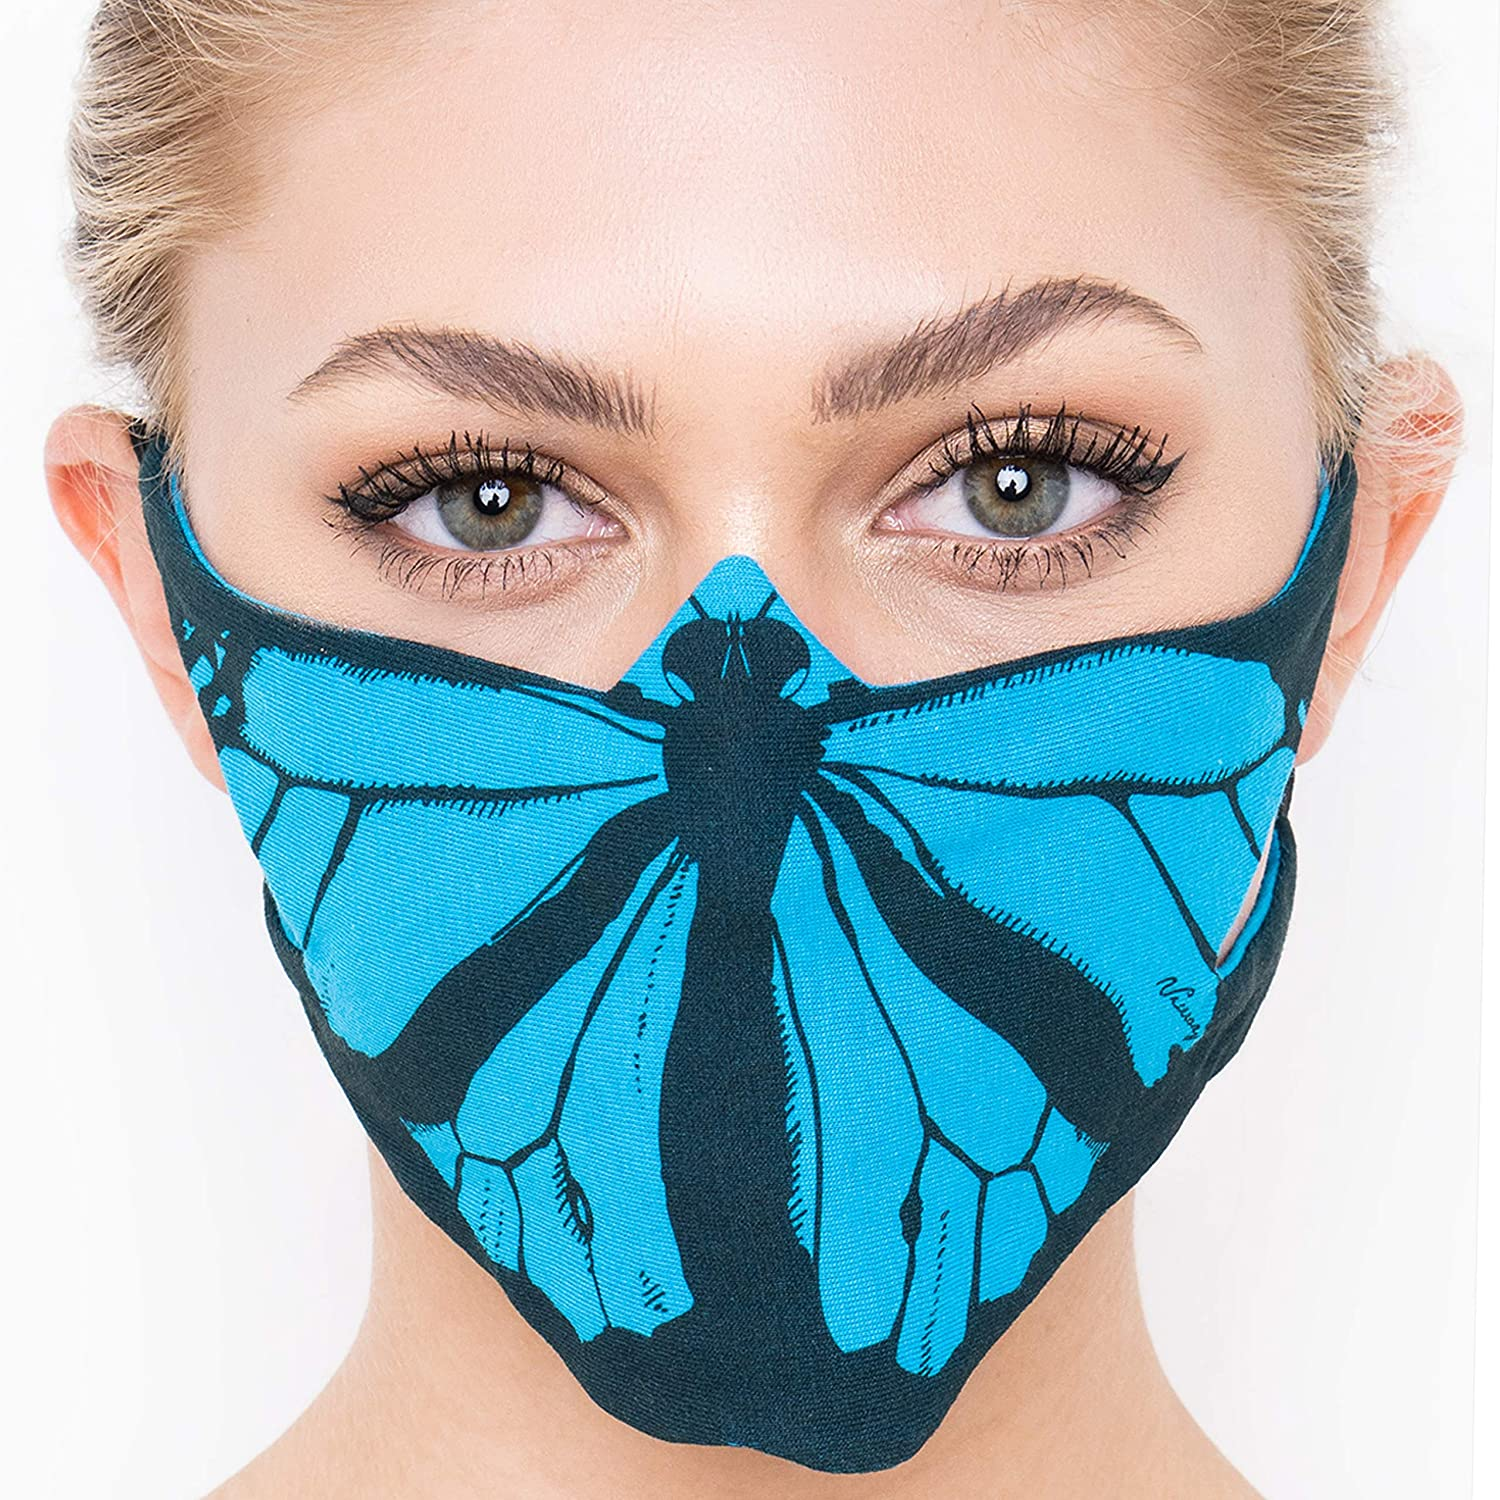 Stylish Handmade Mask with Chicago Mall Filter Women Cotton Inventory cleanup selling sale Facemask; Pocket.